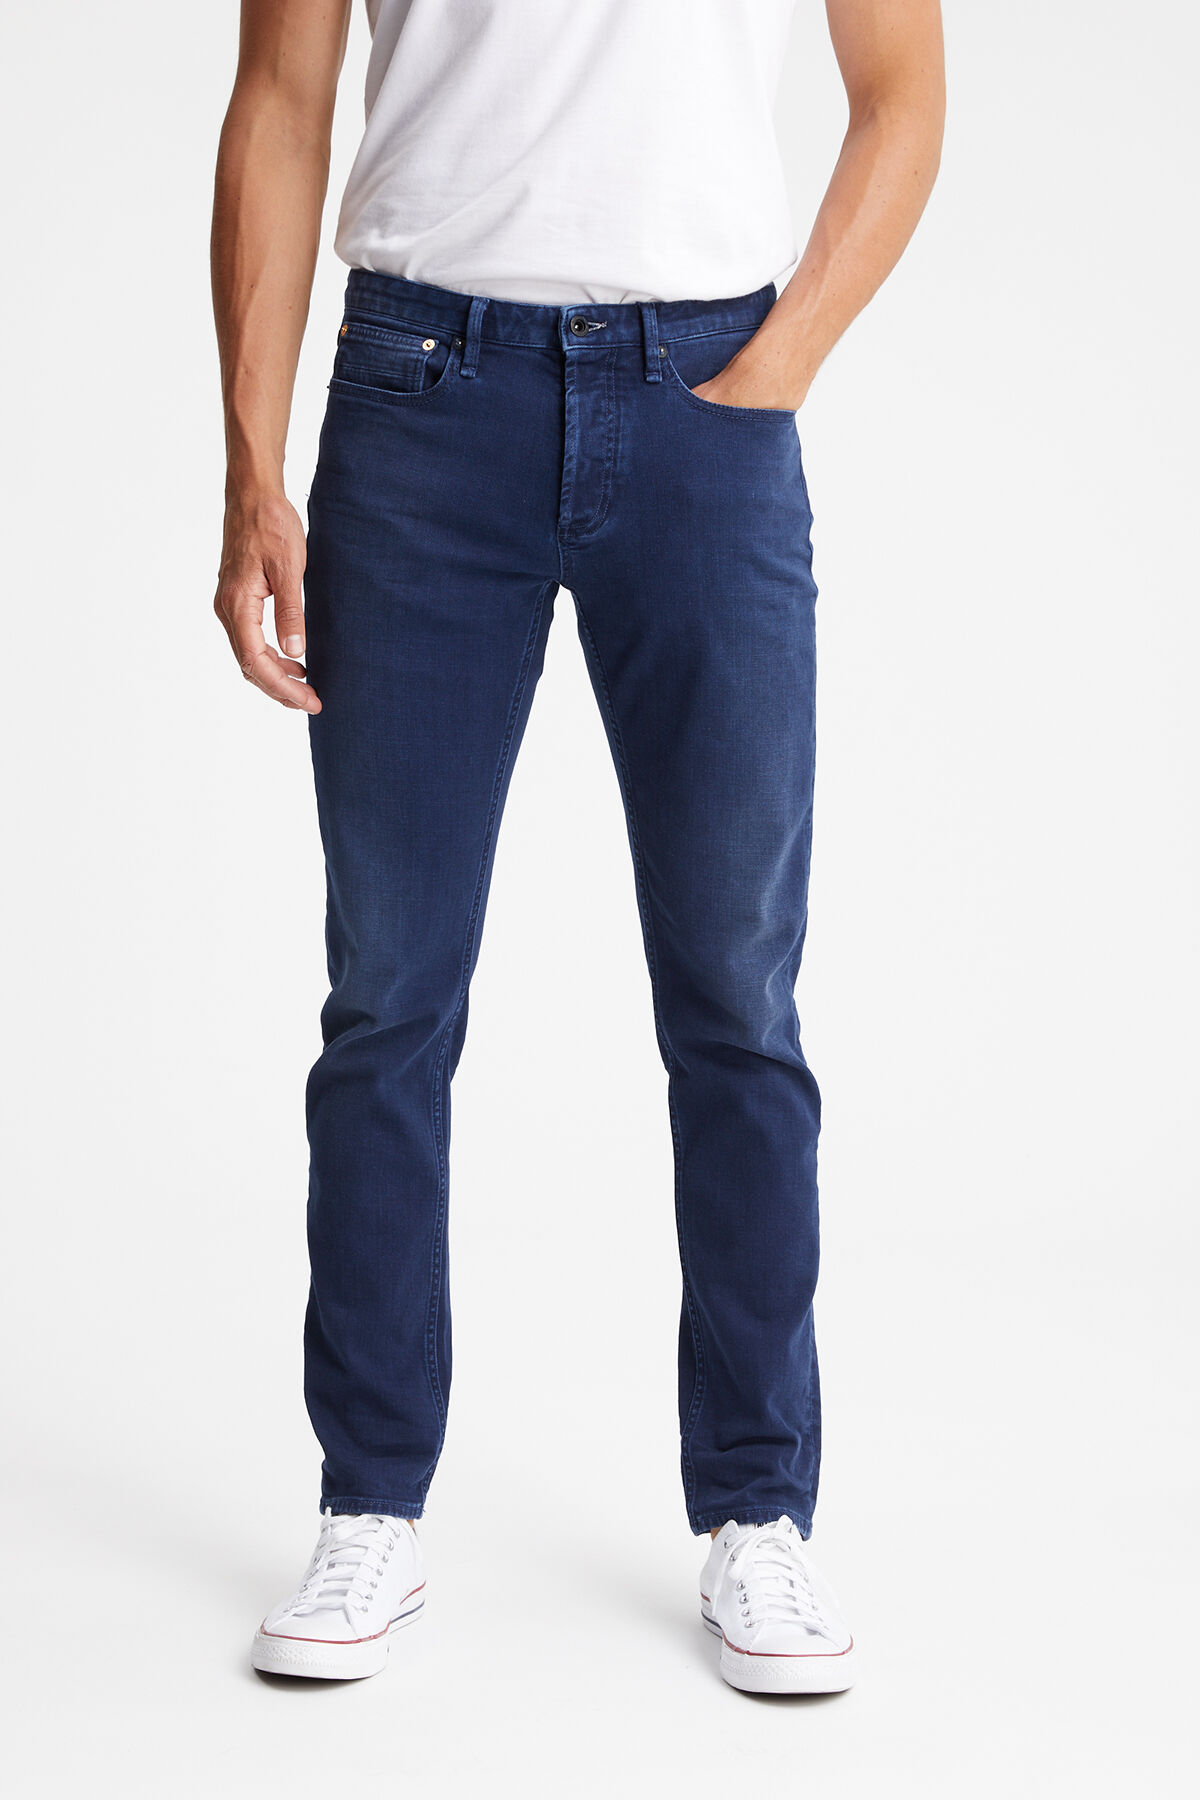 RAZOR Left-hand dark wash - Slim Fit